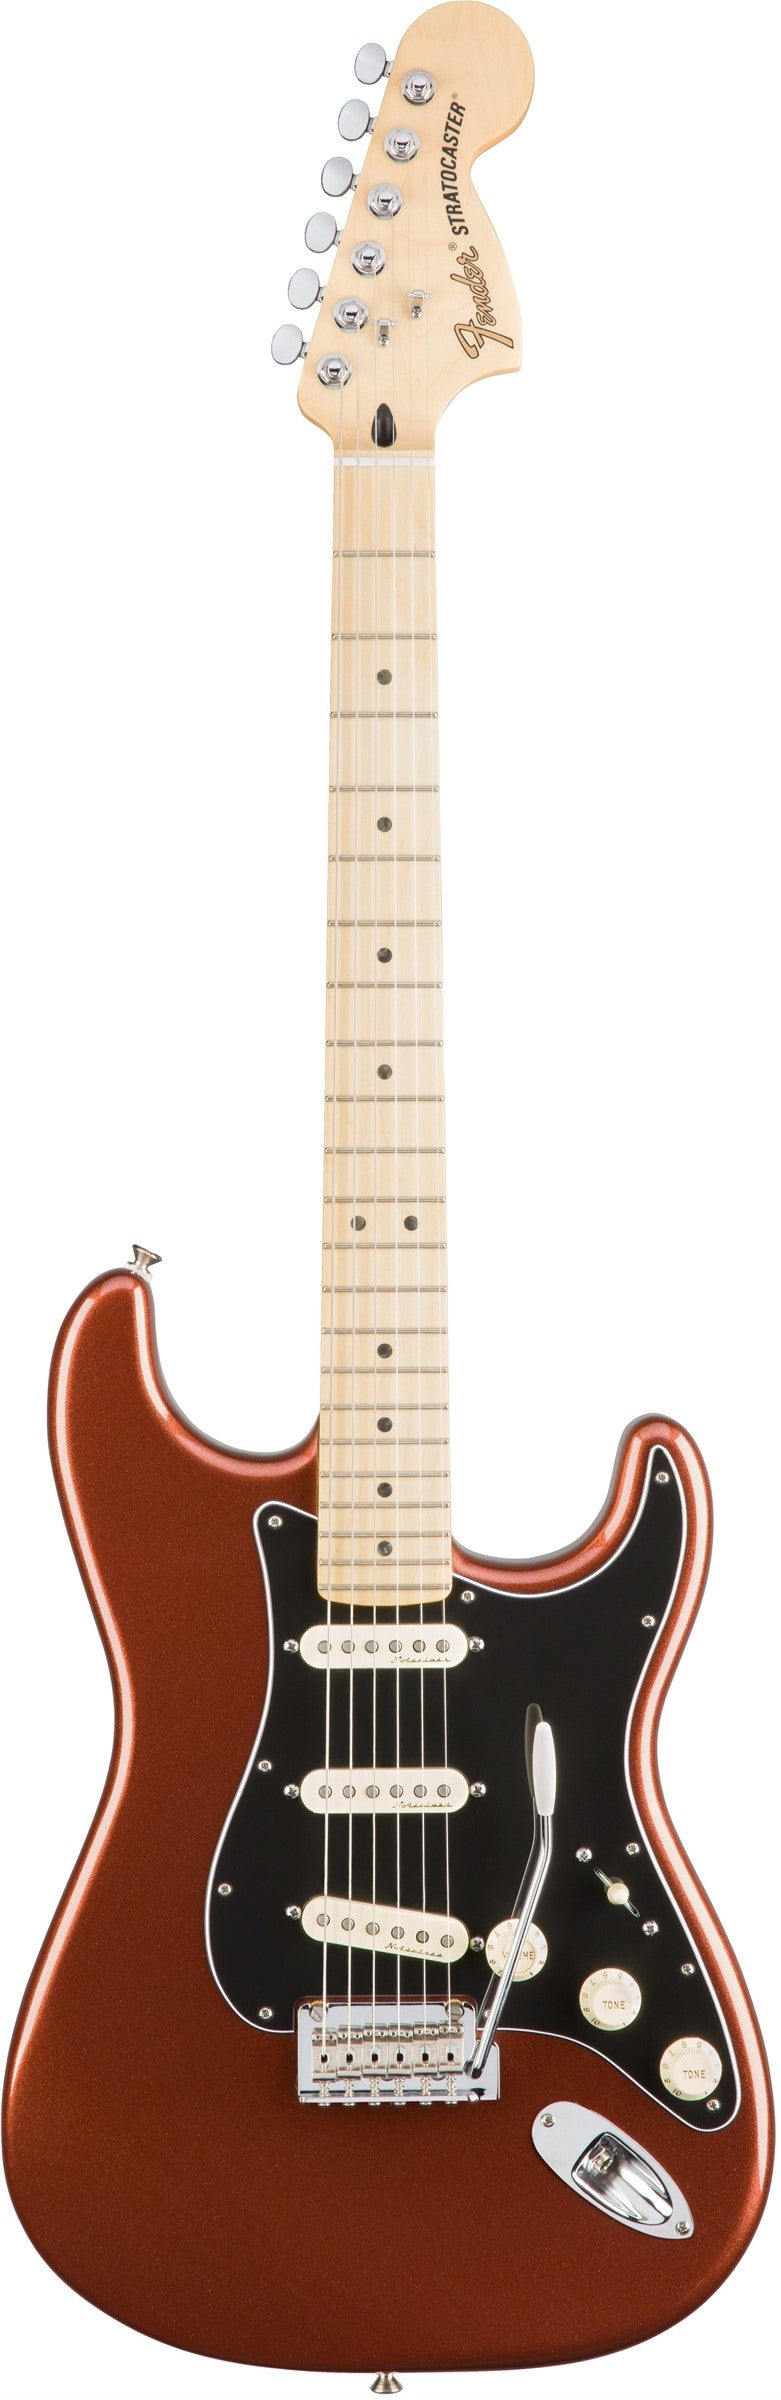 Fender Deluxe Roadhouse Stratocaster - Maple Fingerboard, Classic Copper